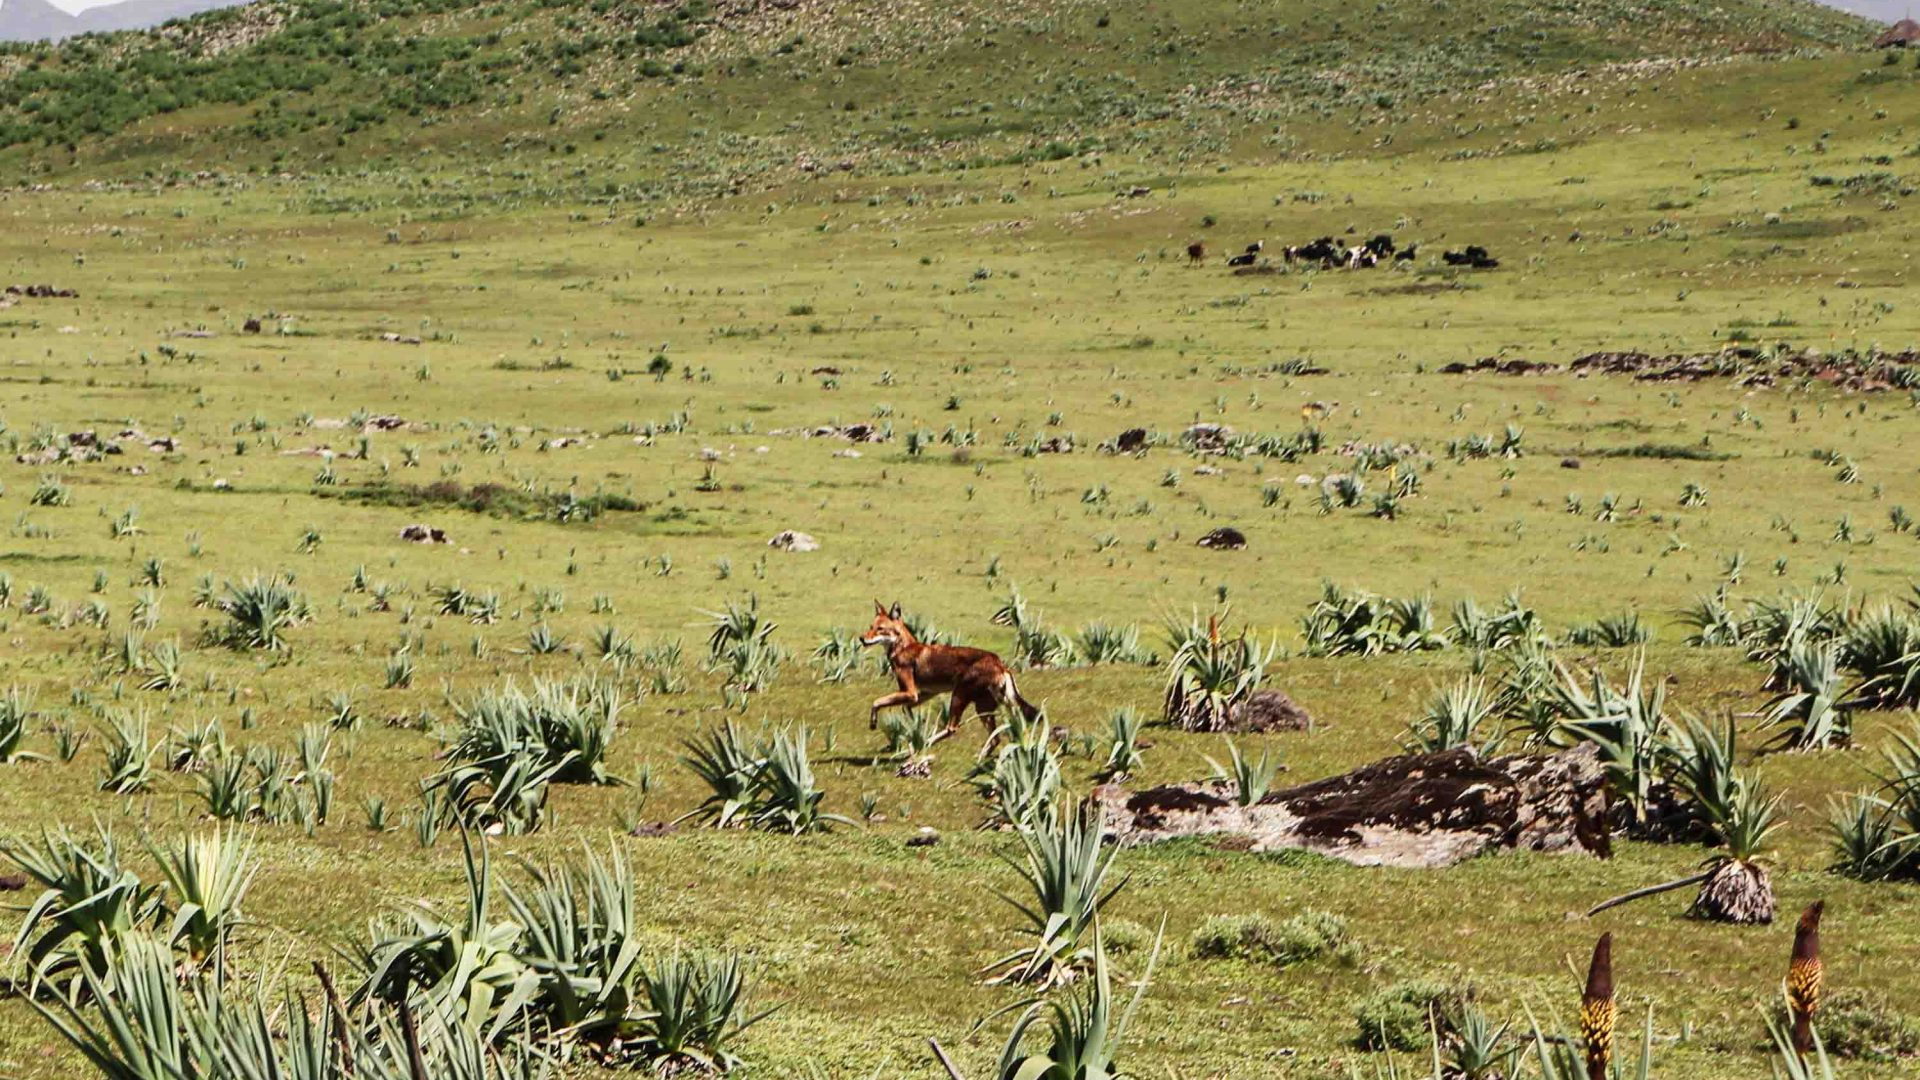 An Ethiopian wolf in the Bale Mountains.